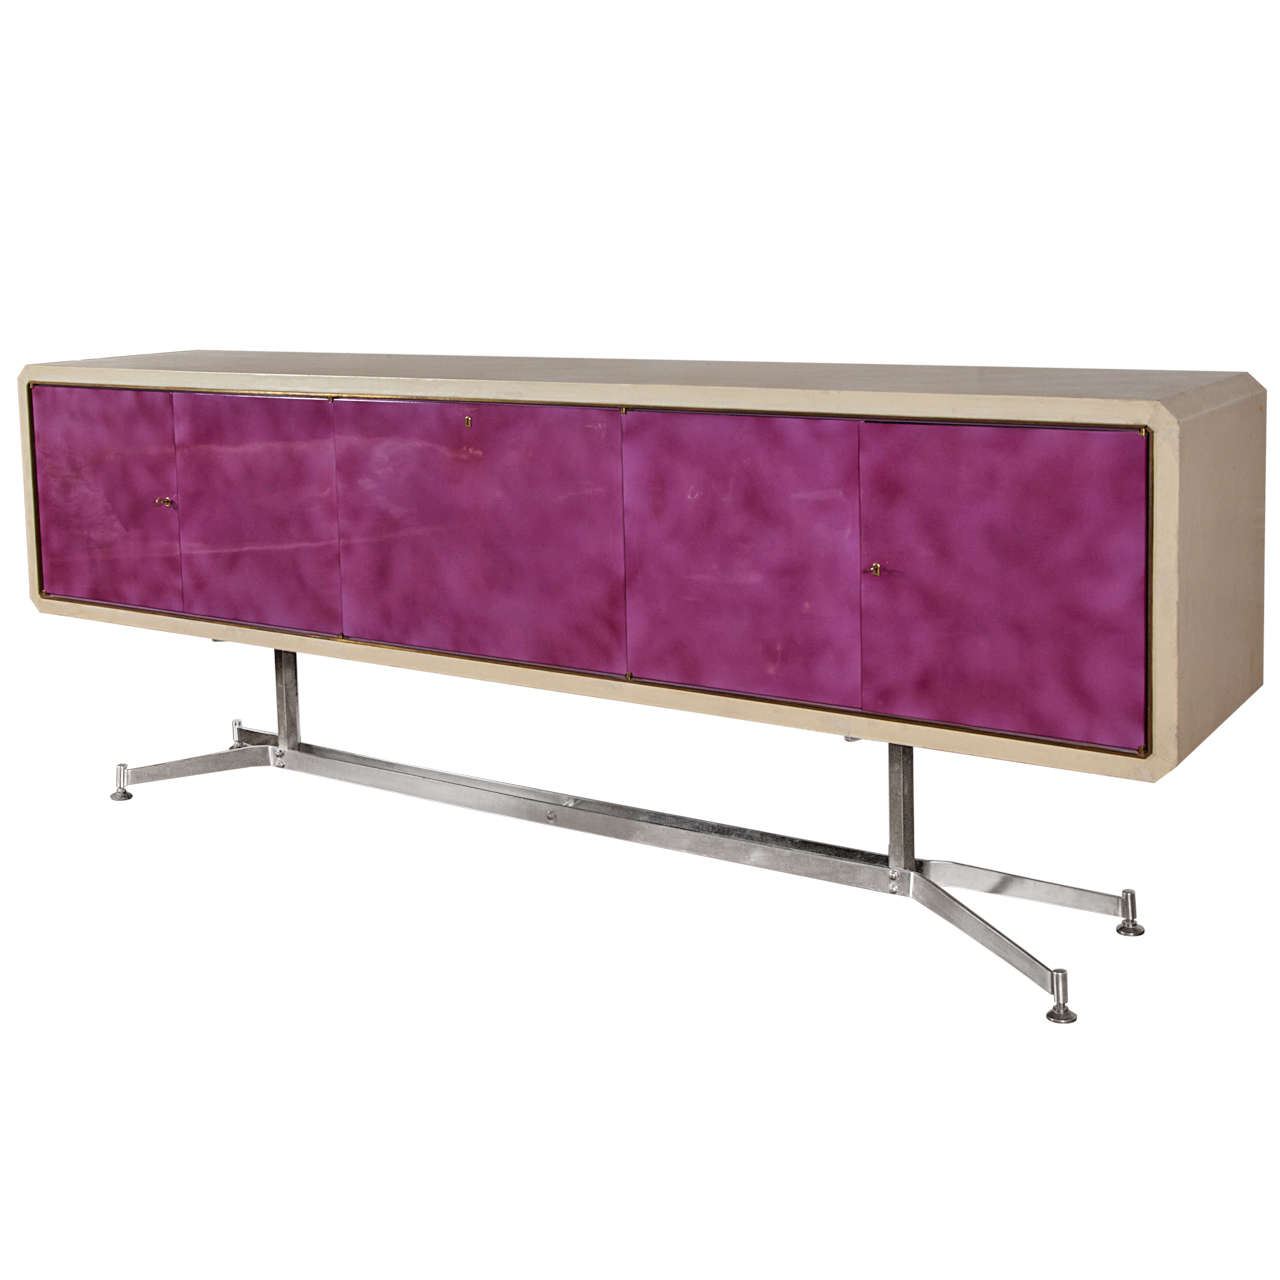 Rare 1960s Sideboard Designed by Enzo Missoni